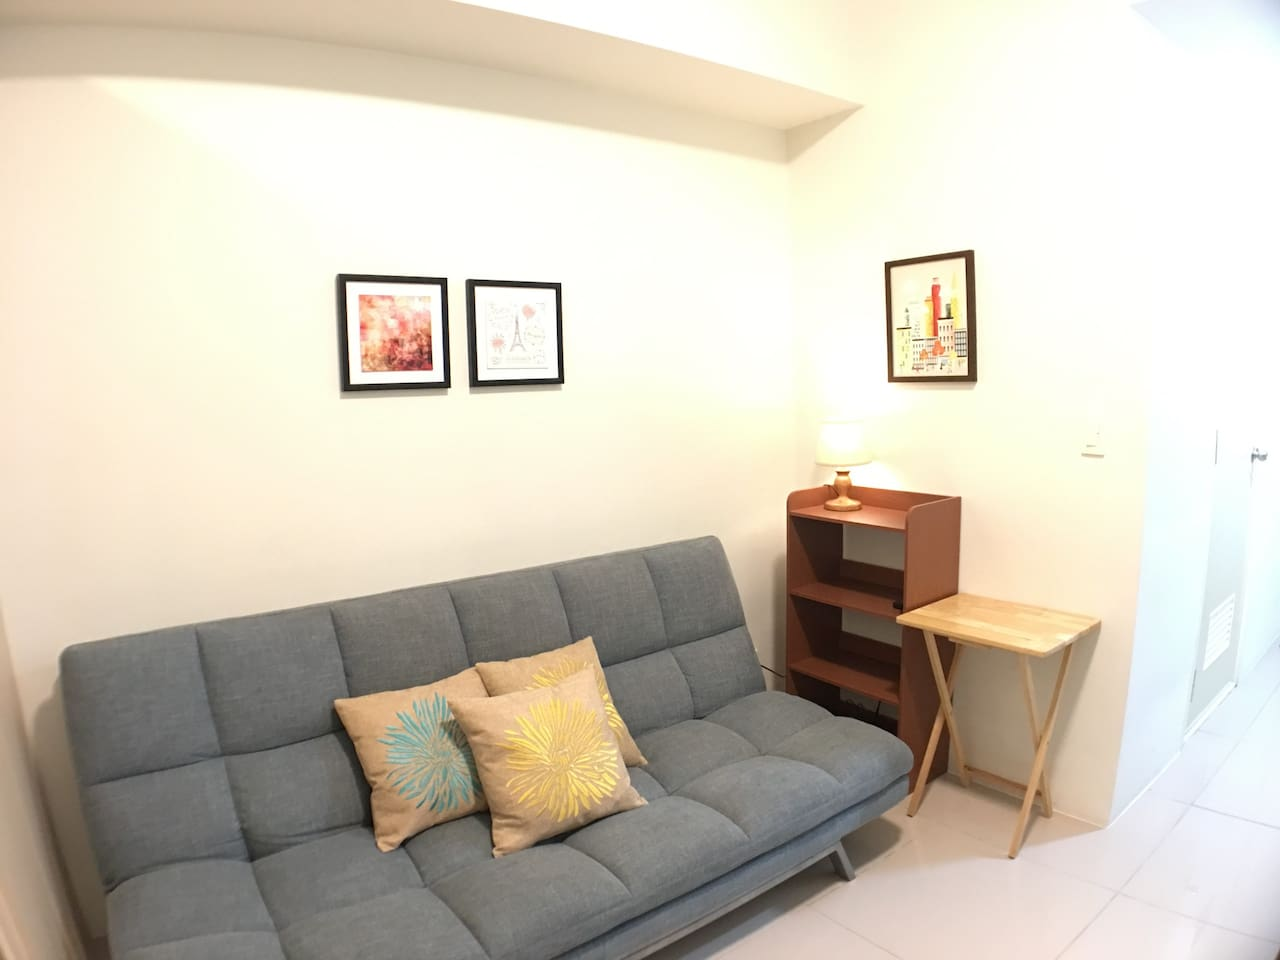 Enjoy watching in this cozy sofa